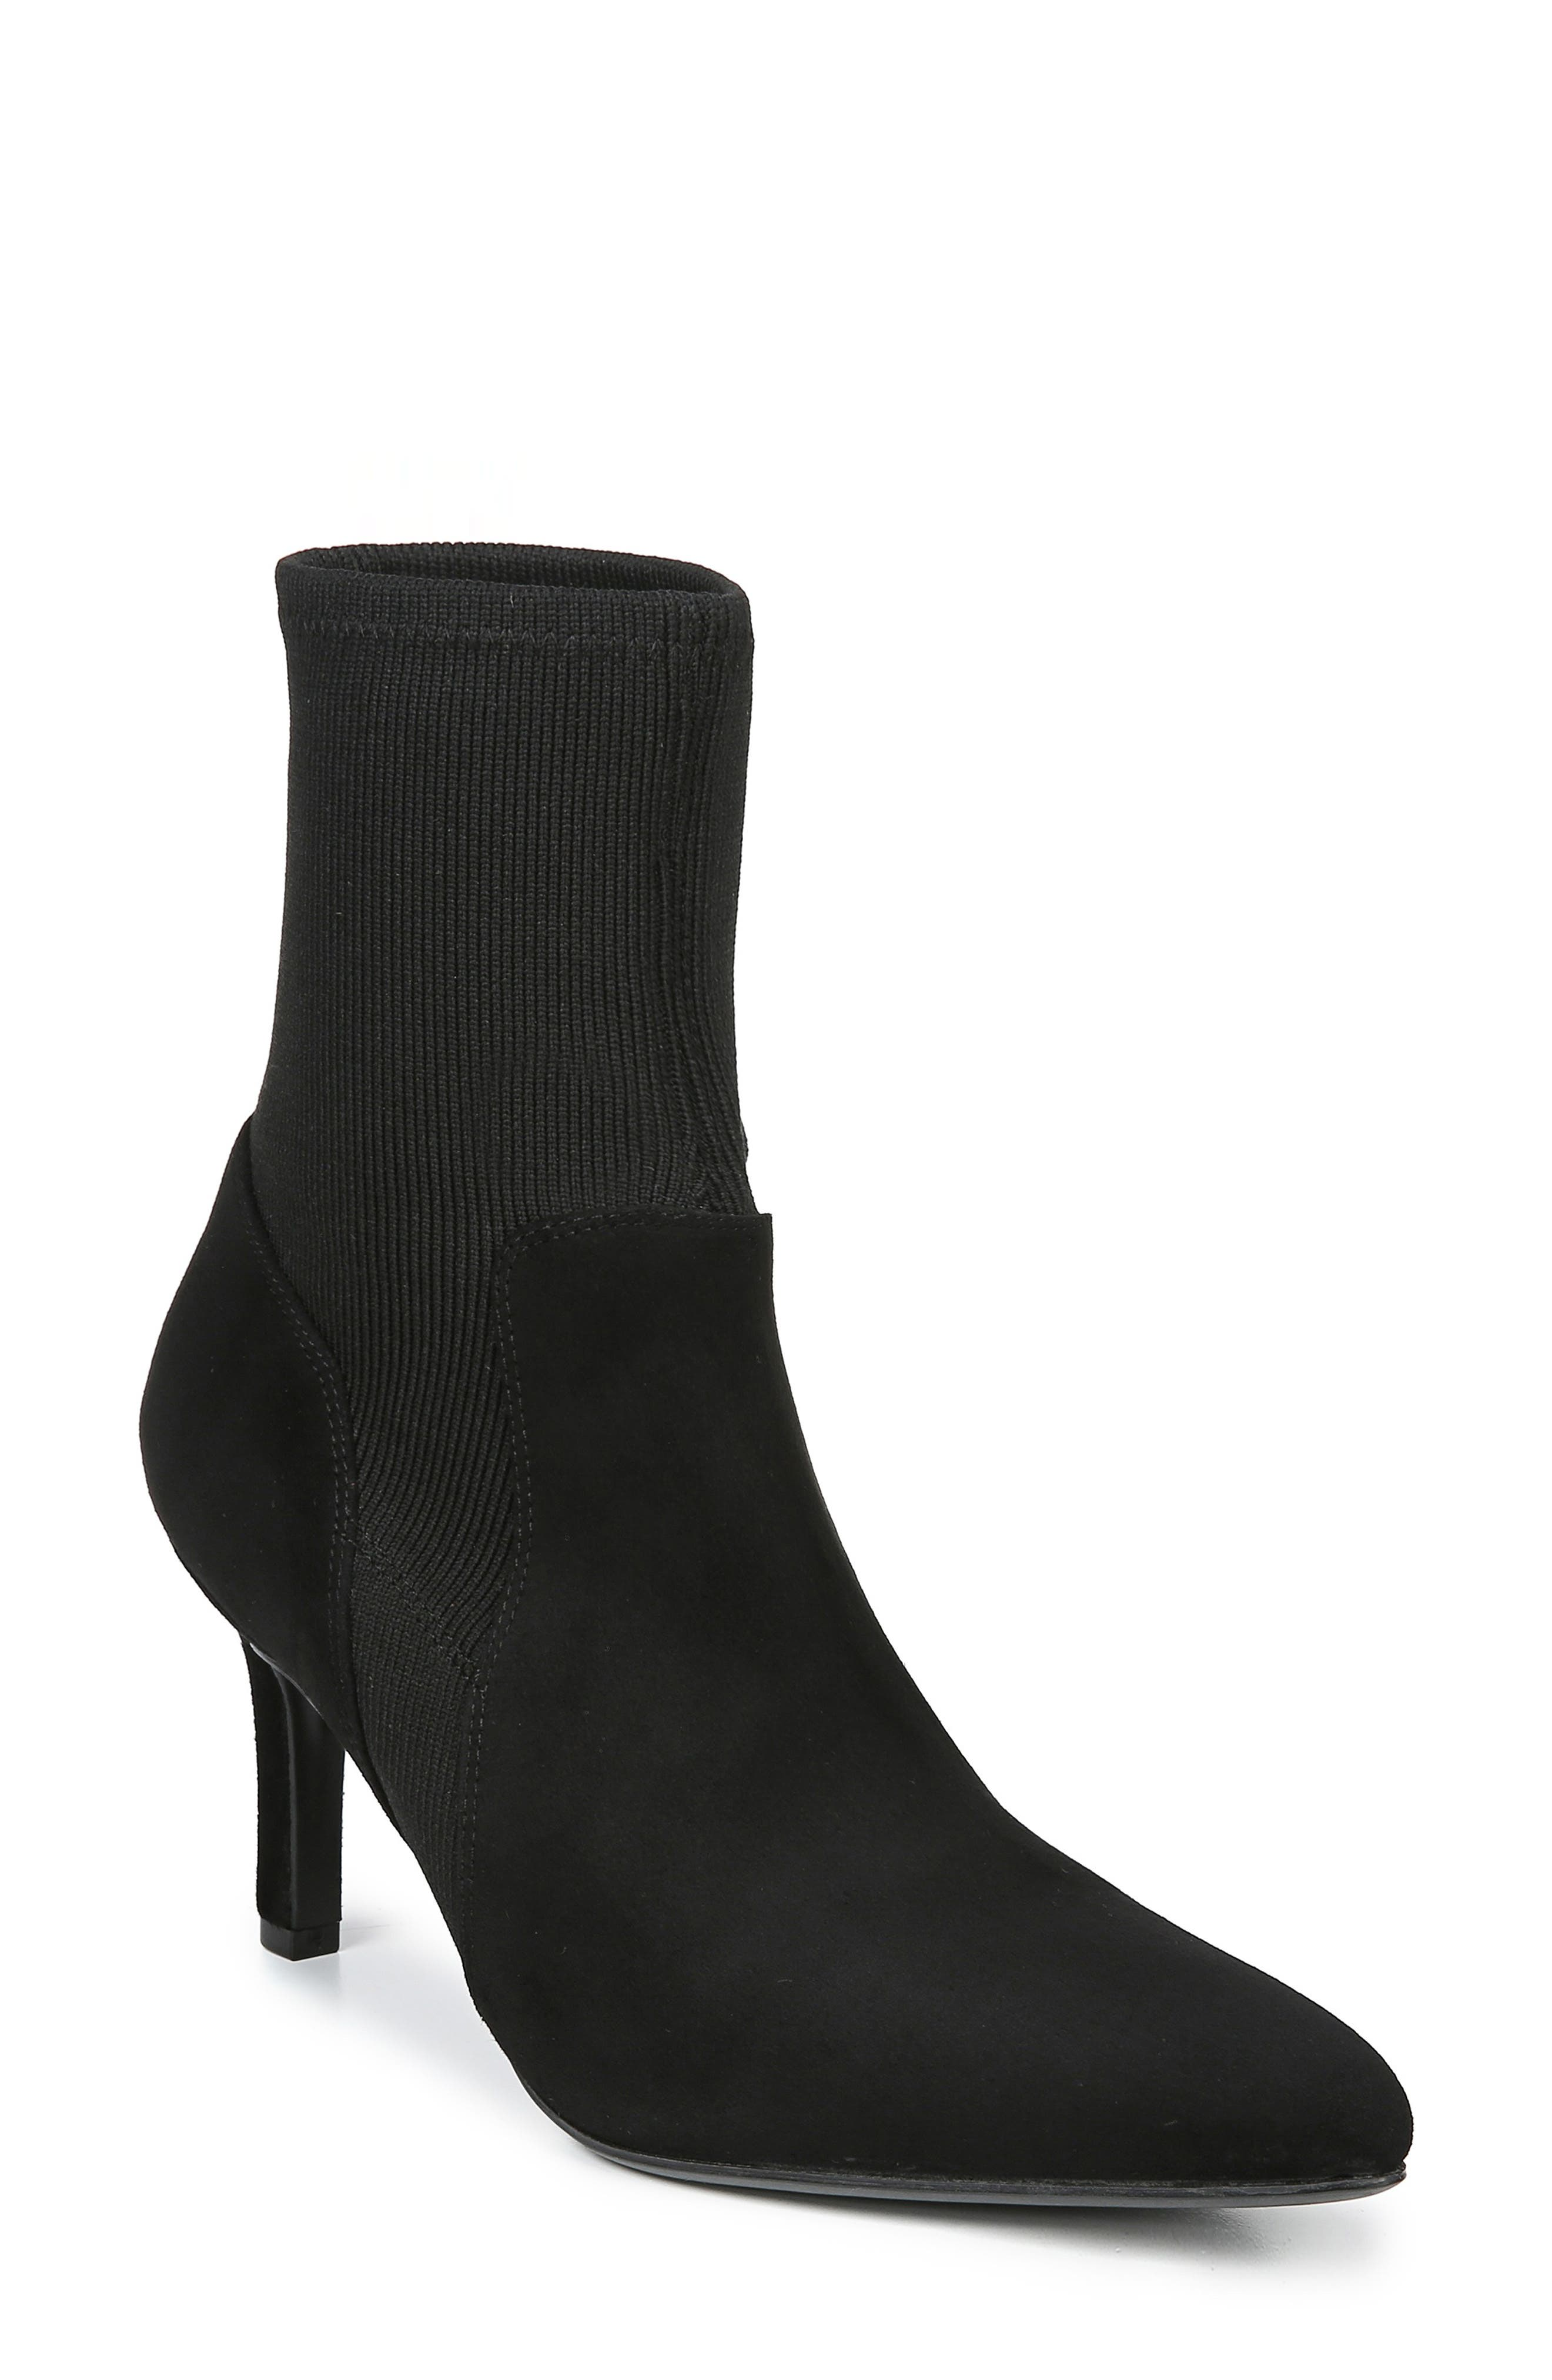 Naturalizer Neola Bootie